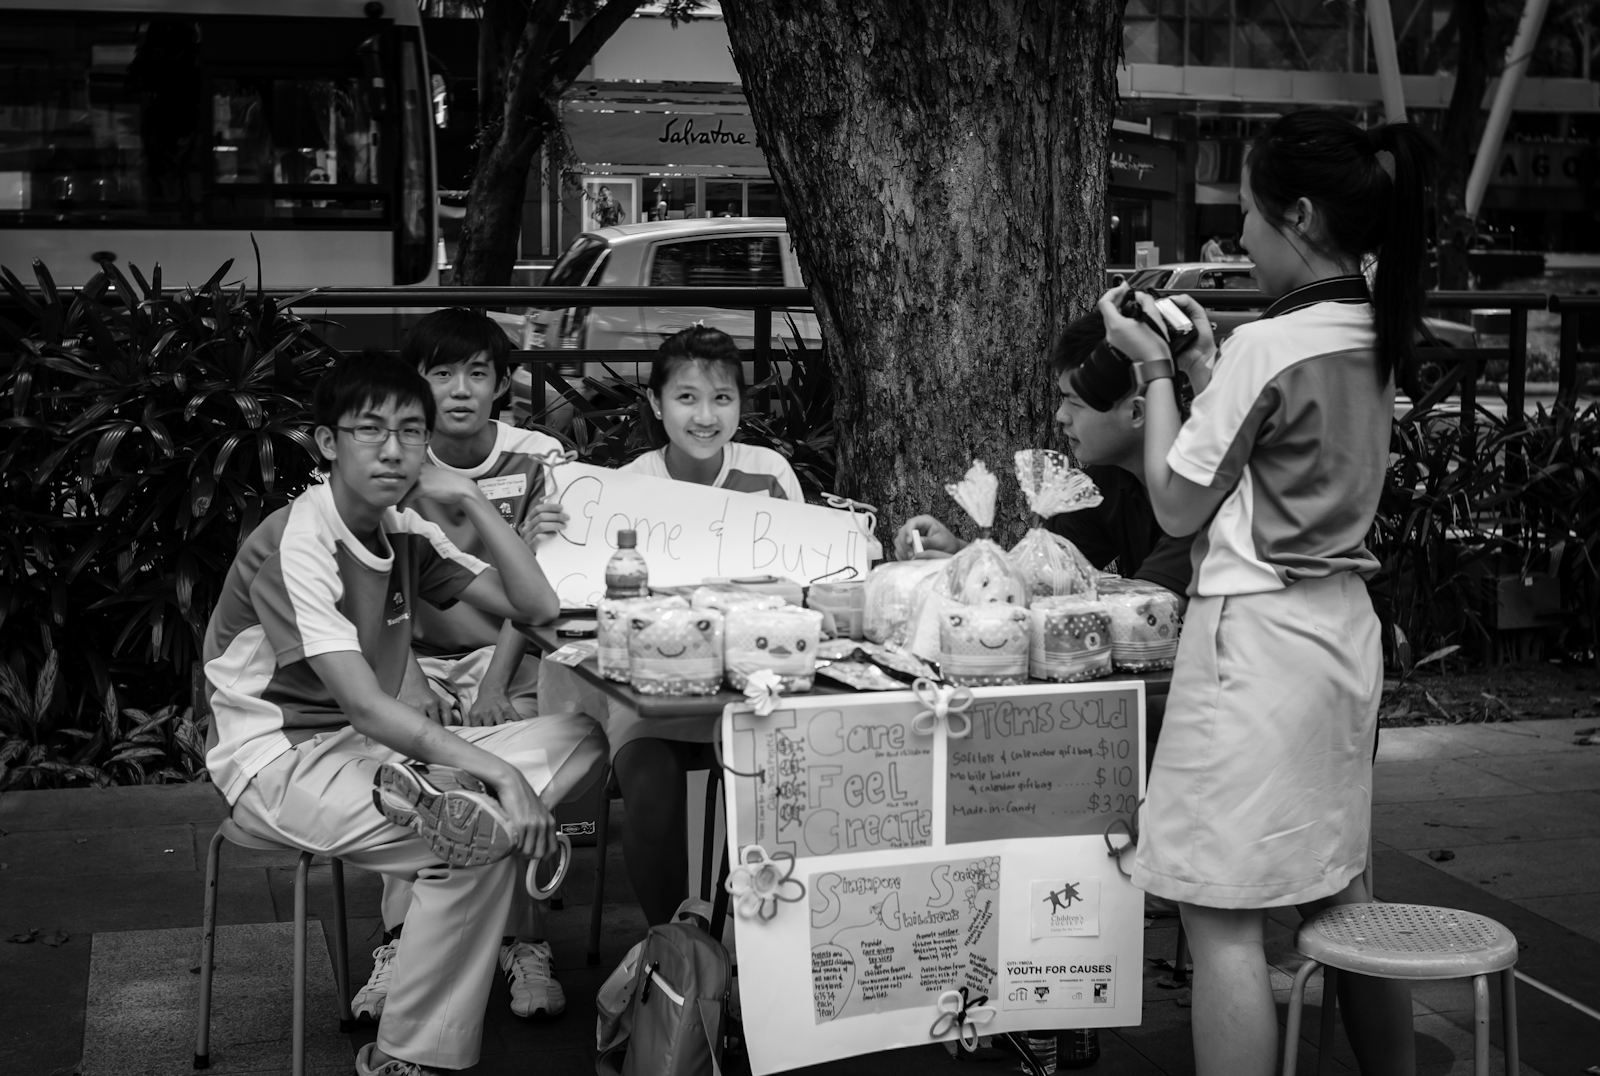 Street photography - charity drive in Orchard by Nanyang Junior College